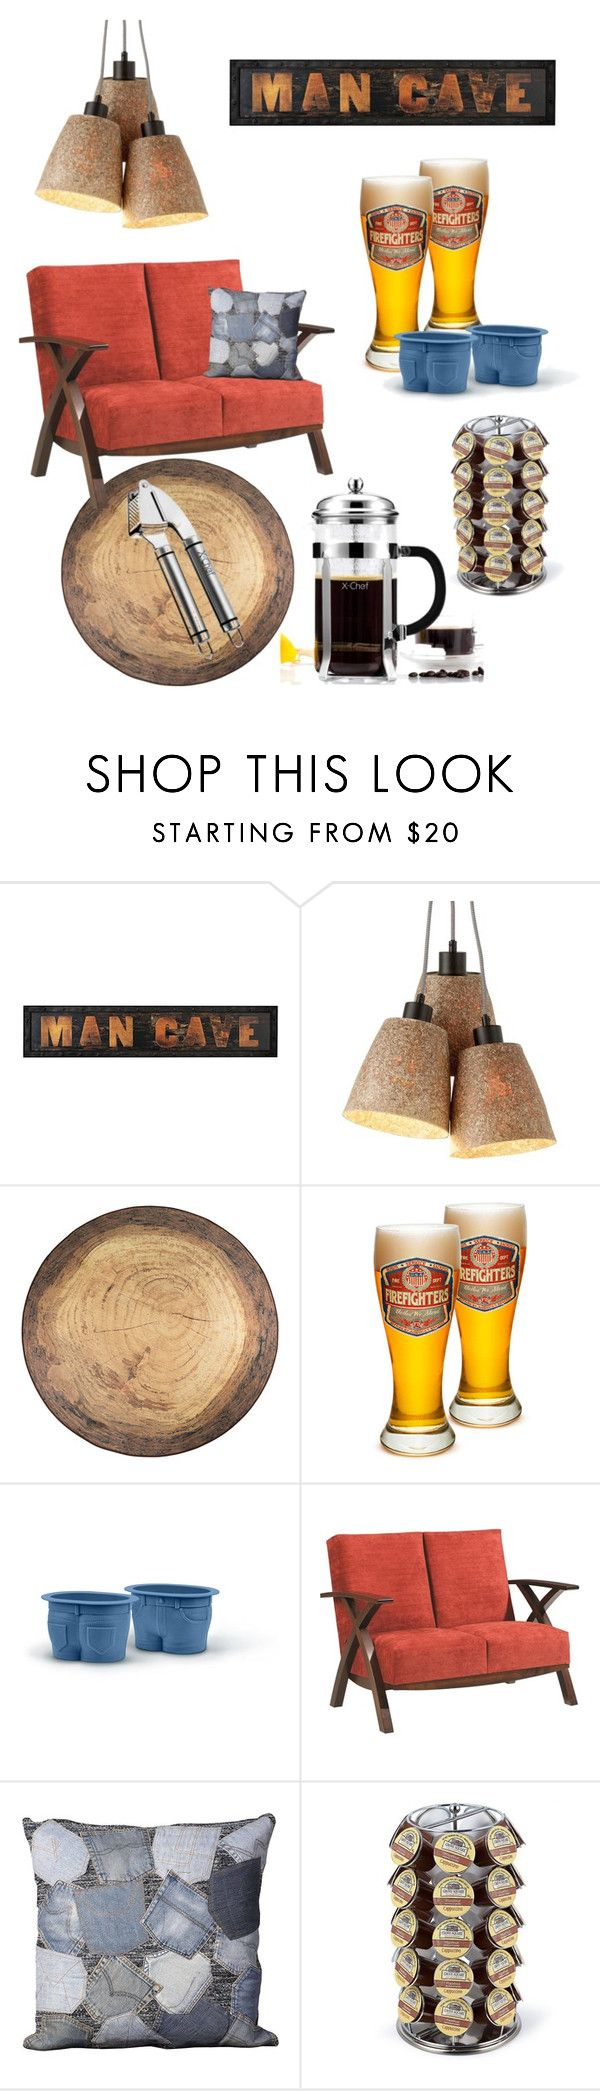 """""""Man's Cave"""" by ioakleaf on Polyvore featuring interior, interiors, interior design, home, home decor, interior decorating, Fred & Friends, DutchCrafters, Mina Victory and Keurig"""